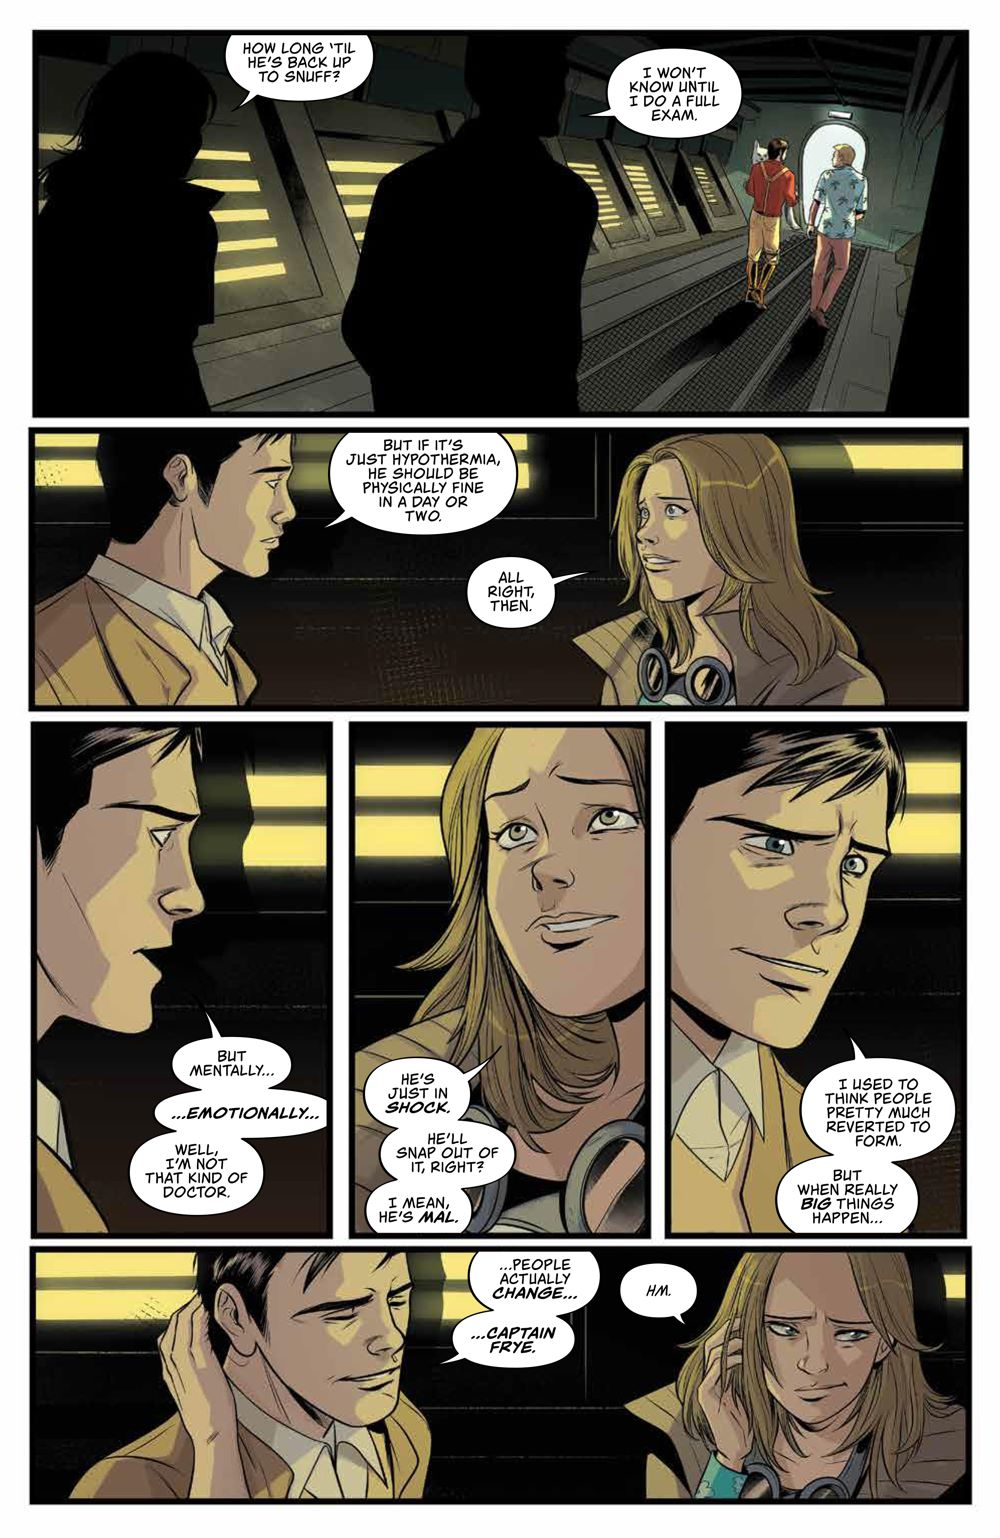 Firefly_028_PRESS_8 ComicList Previews: FIREFLY #28